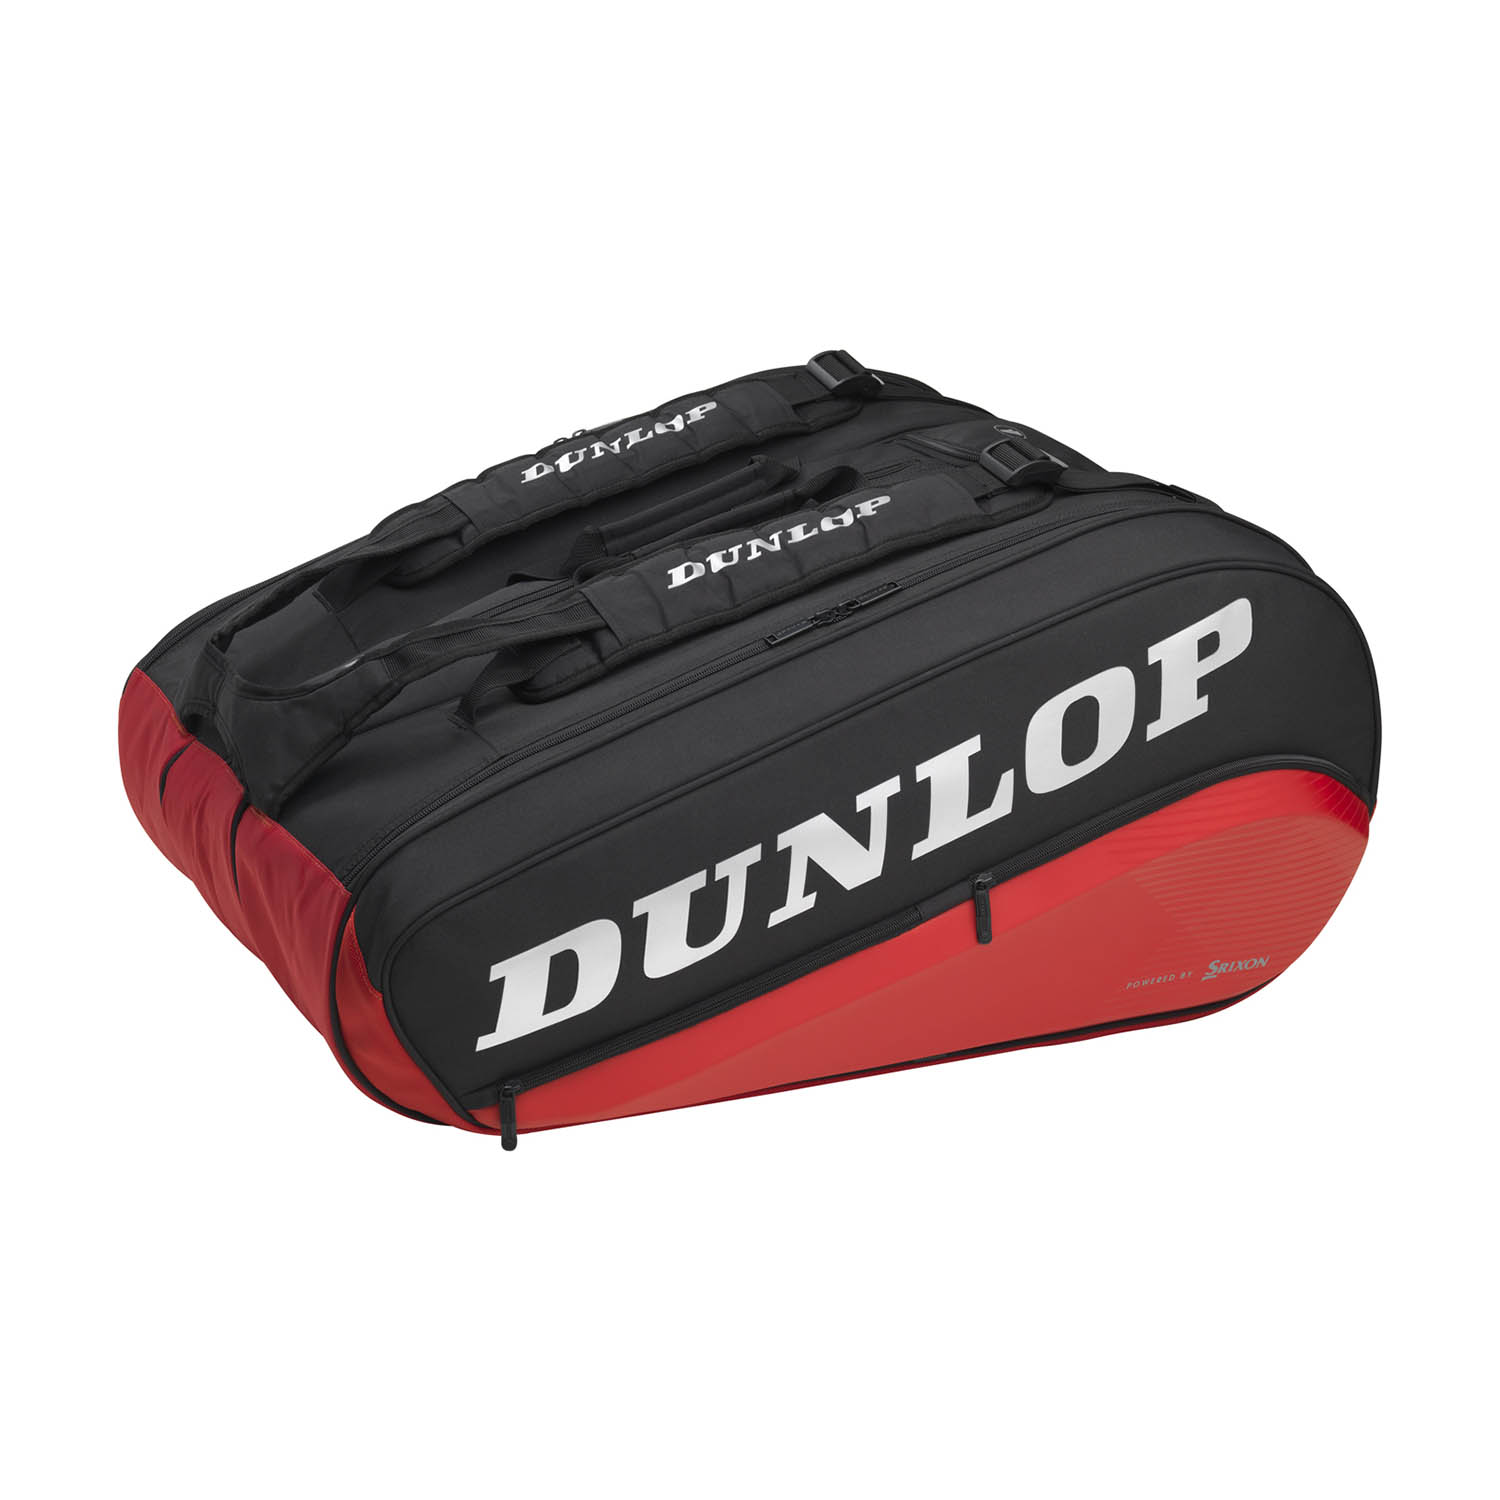 Dunlop CX Performance x 12 Thermo Bag - Black/Red